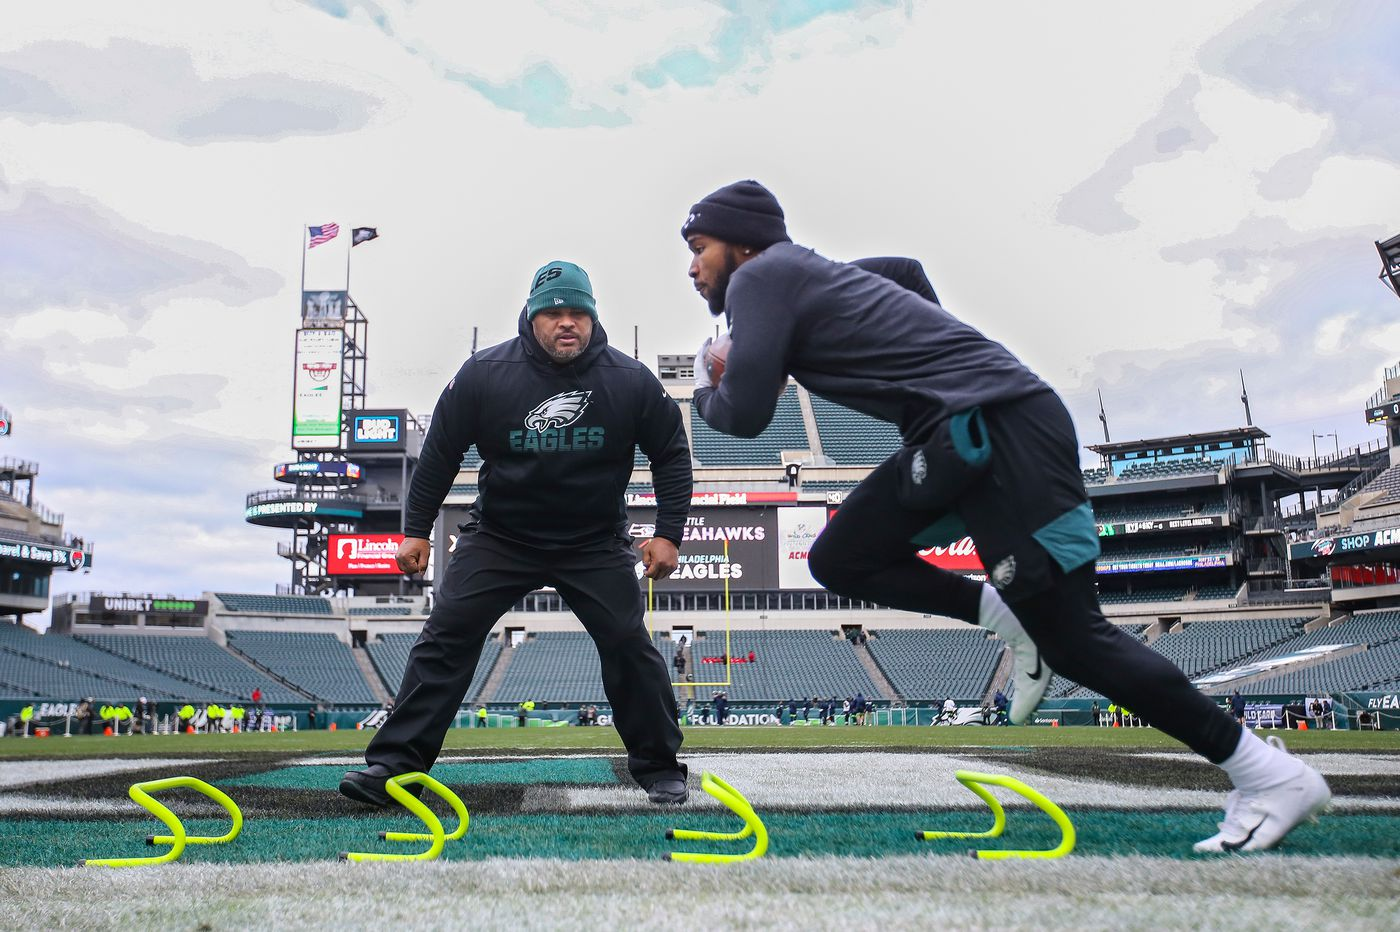 NFL scouting combine: 'Duce Staley drill' was added to the running backs' workouts. What is it?